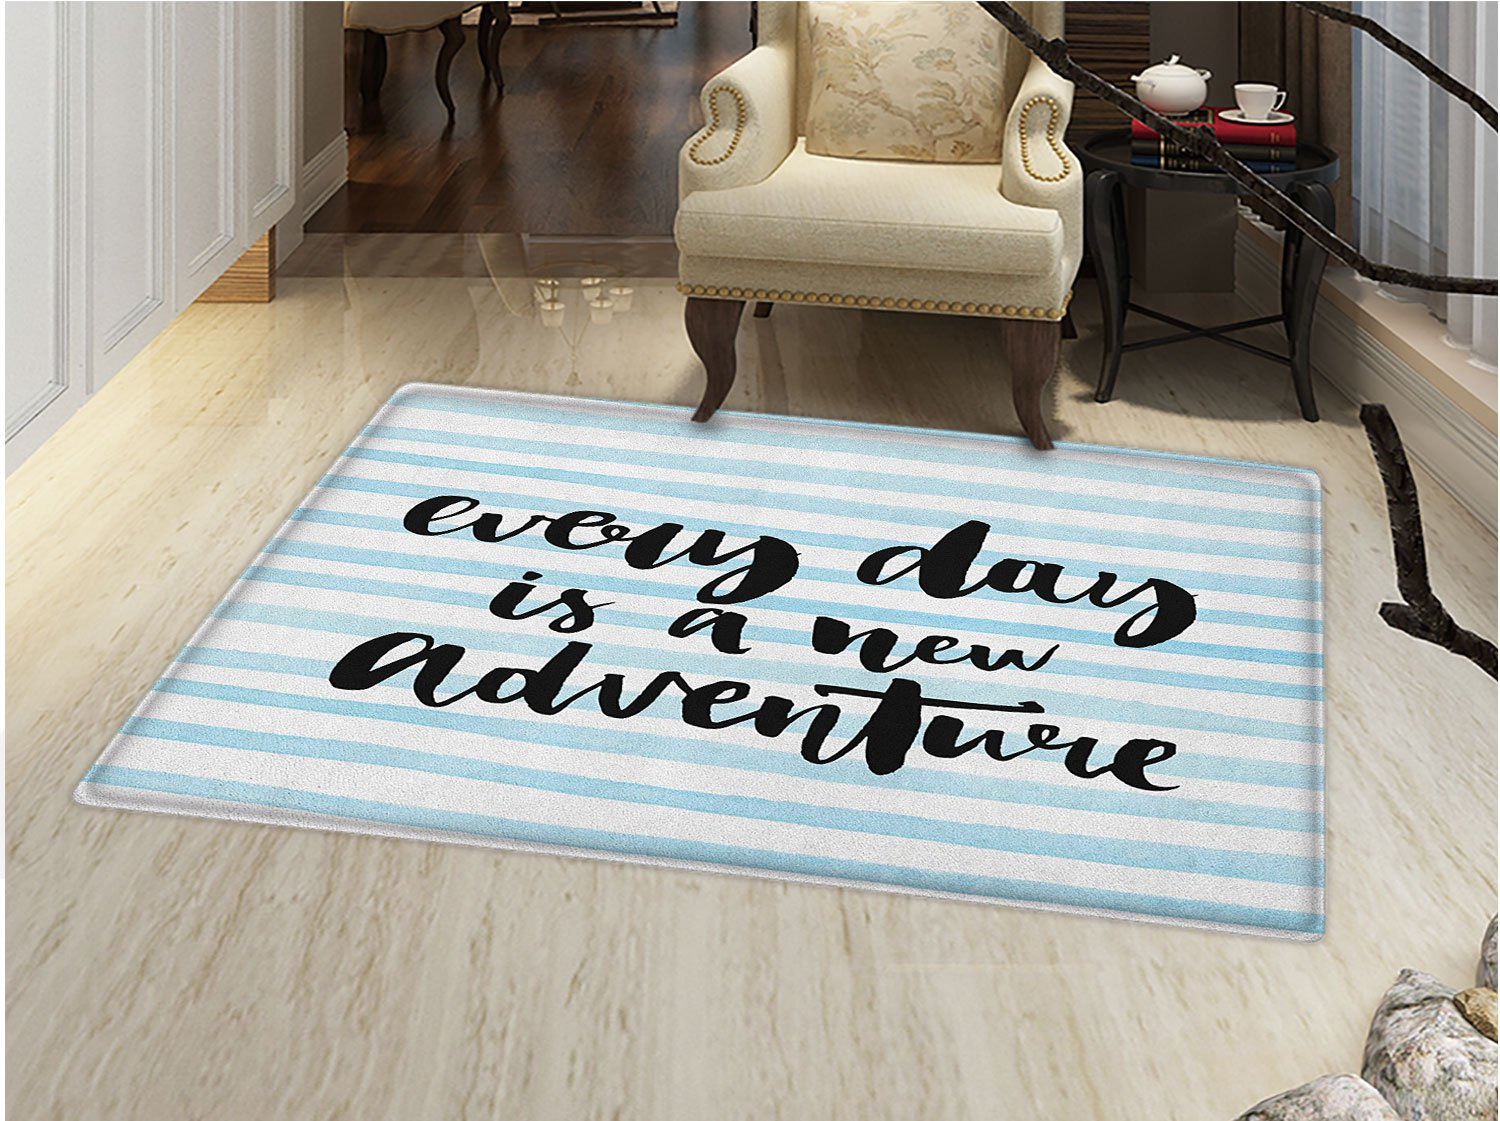 smallbeefly Adventure Door Mat indoors Every Day is a New Adventure Quote Inspirational Things About Life Artwork Customize Bath Mat with Non Slip Backing Baby Blue Black